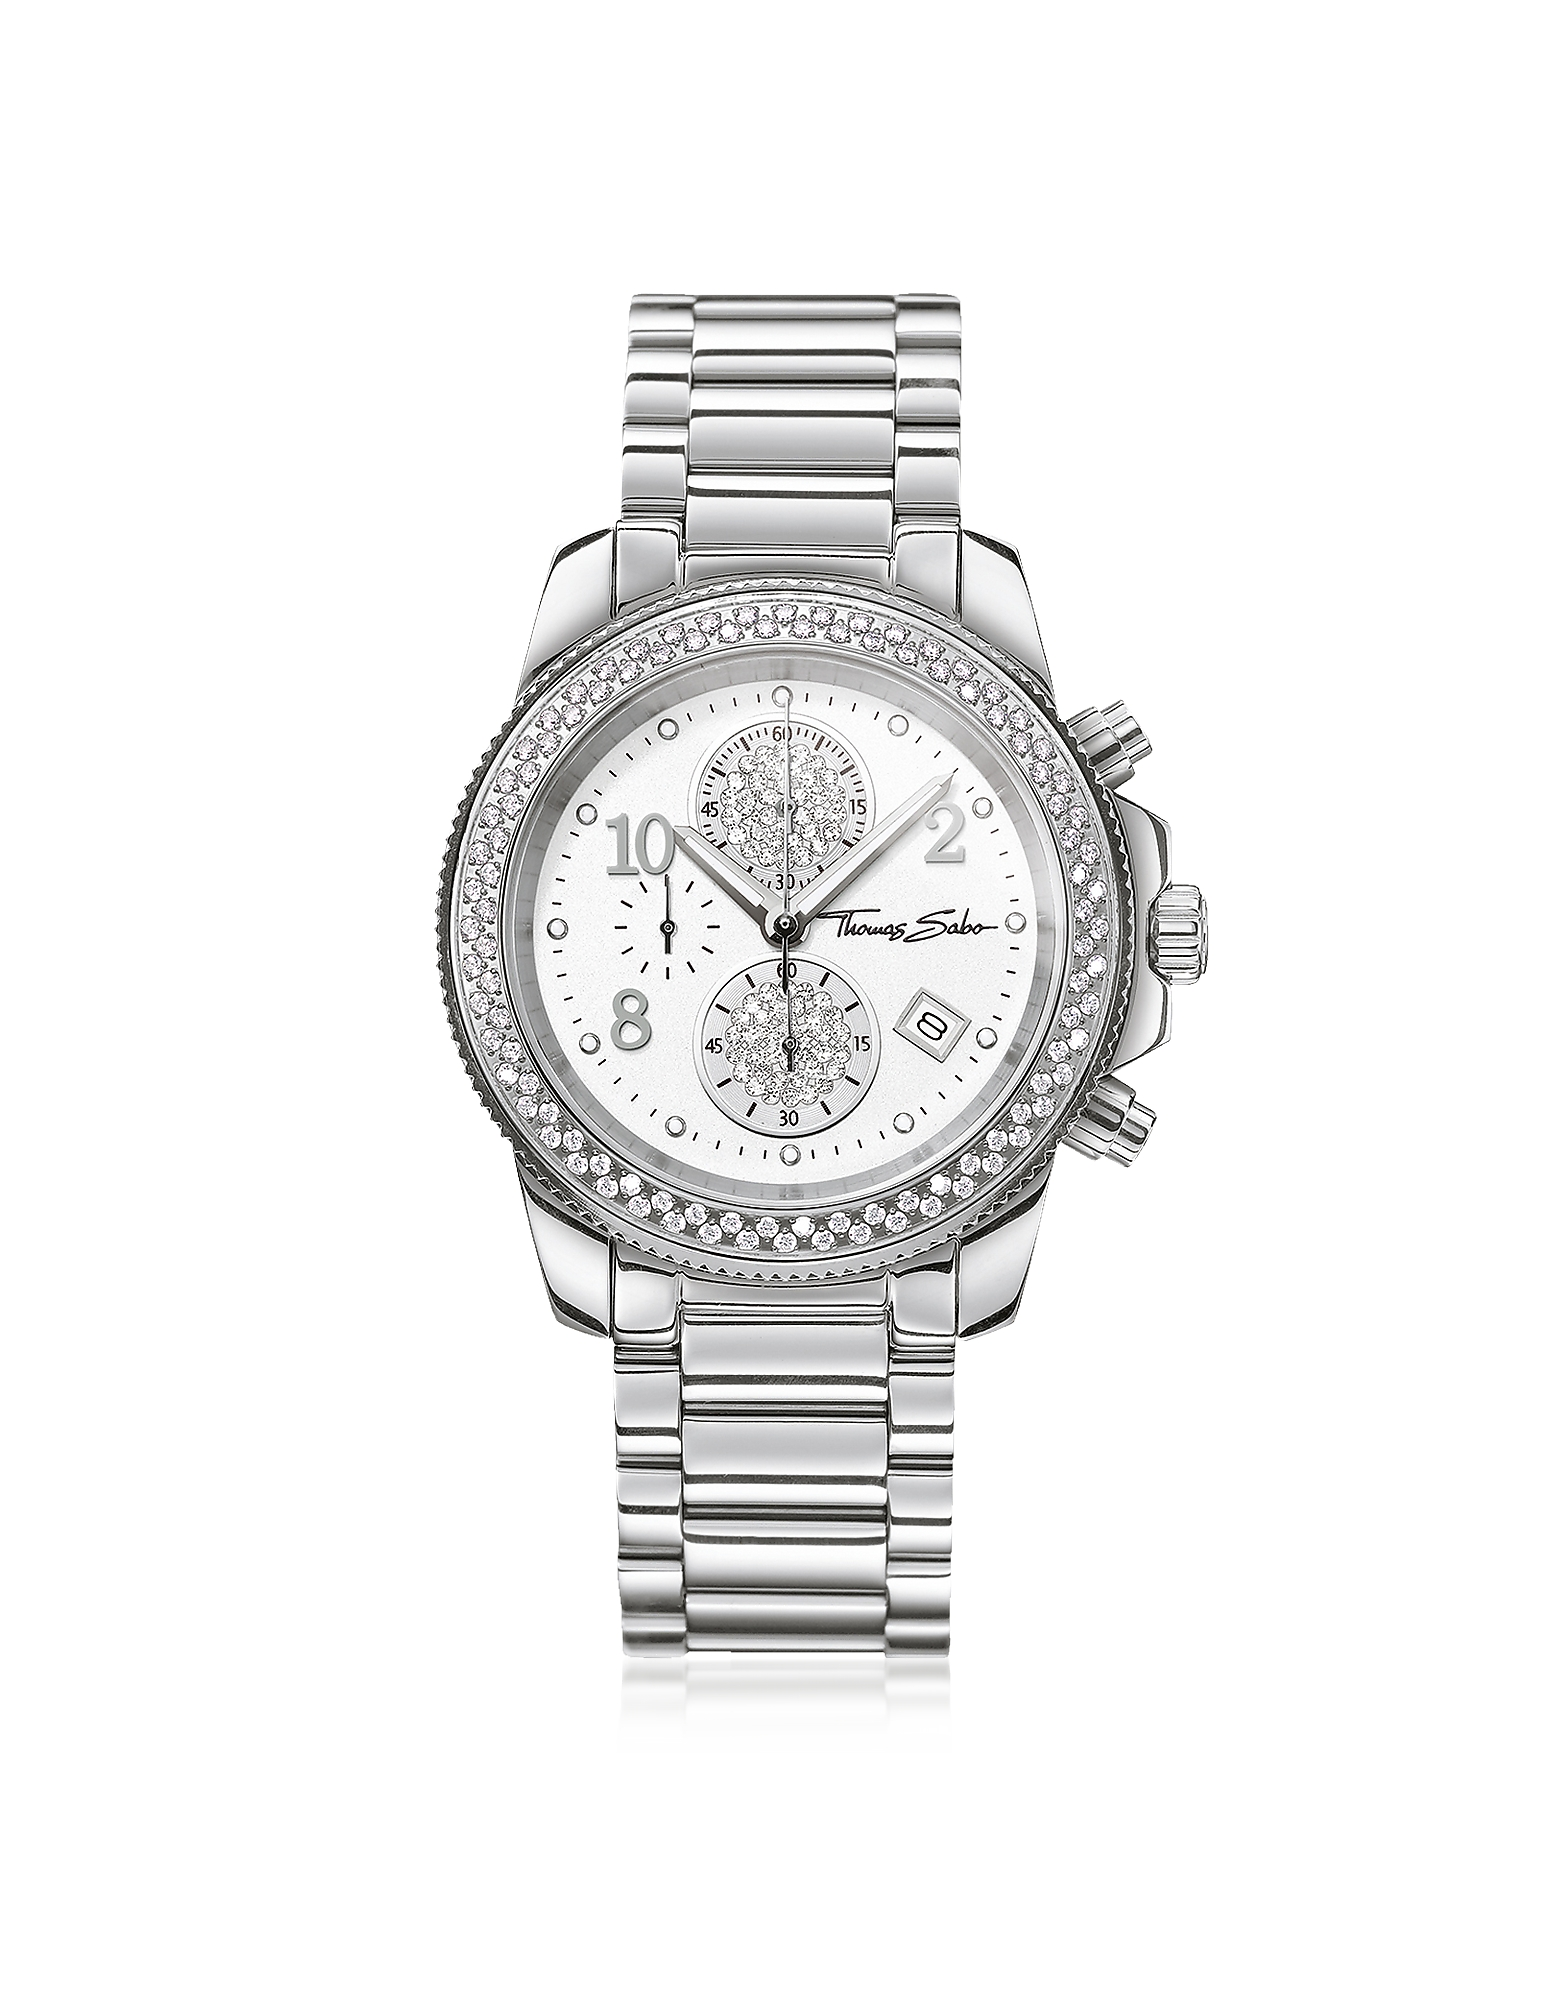 Glam Chrono Silver Stainless Steel Women's Watch w/Crystals